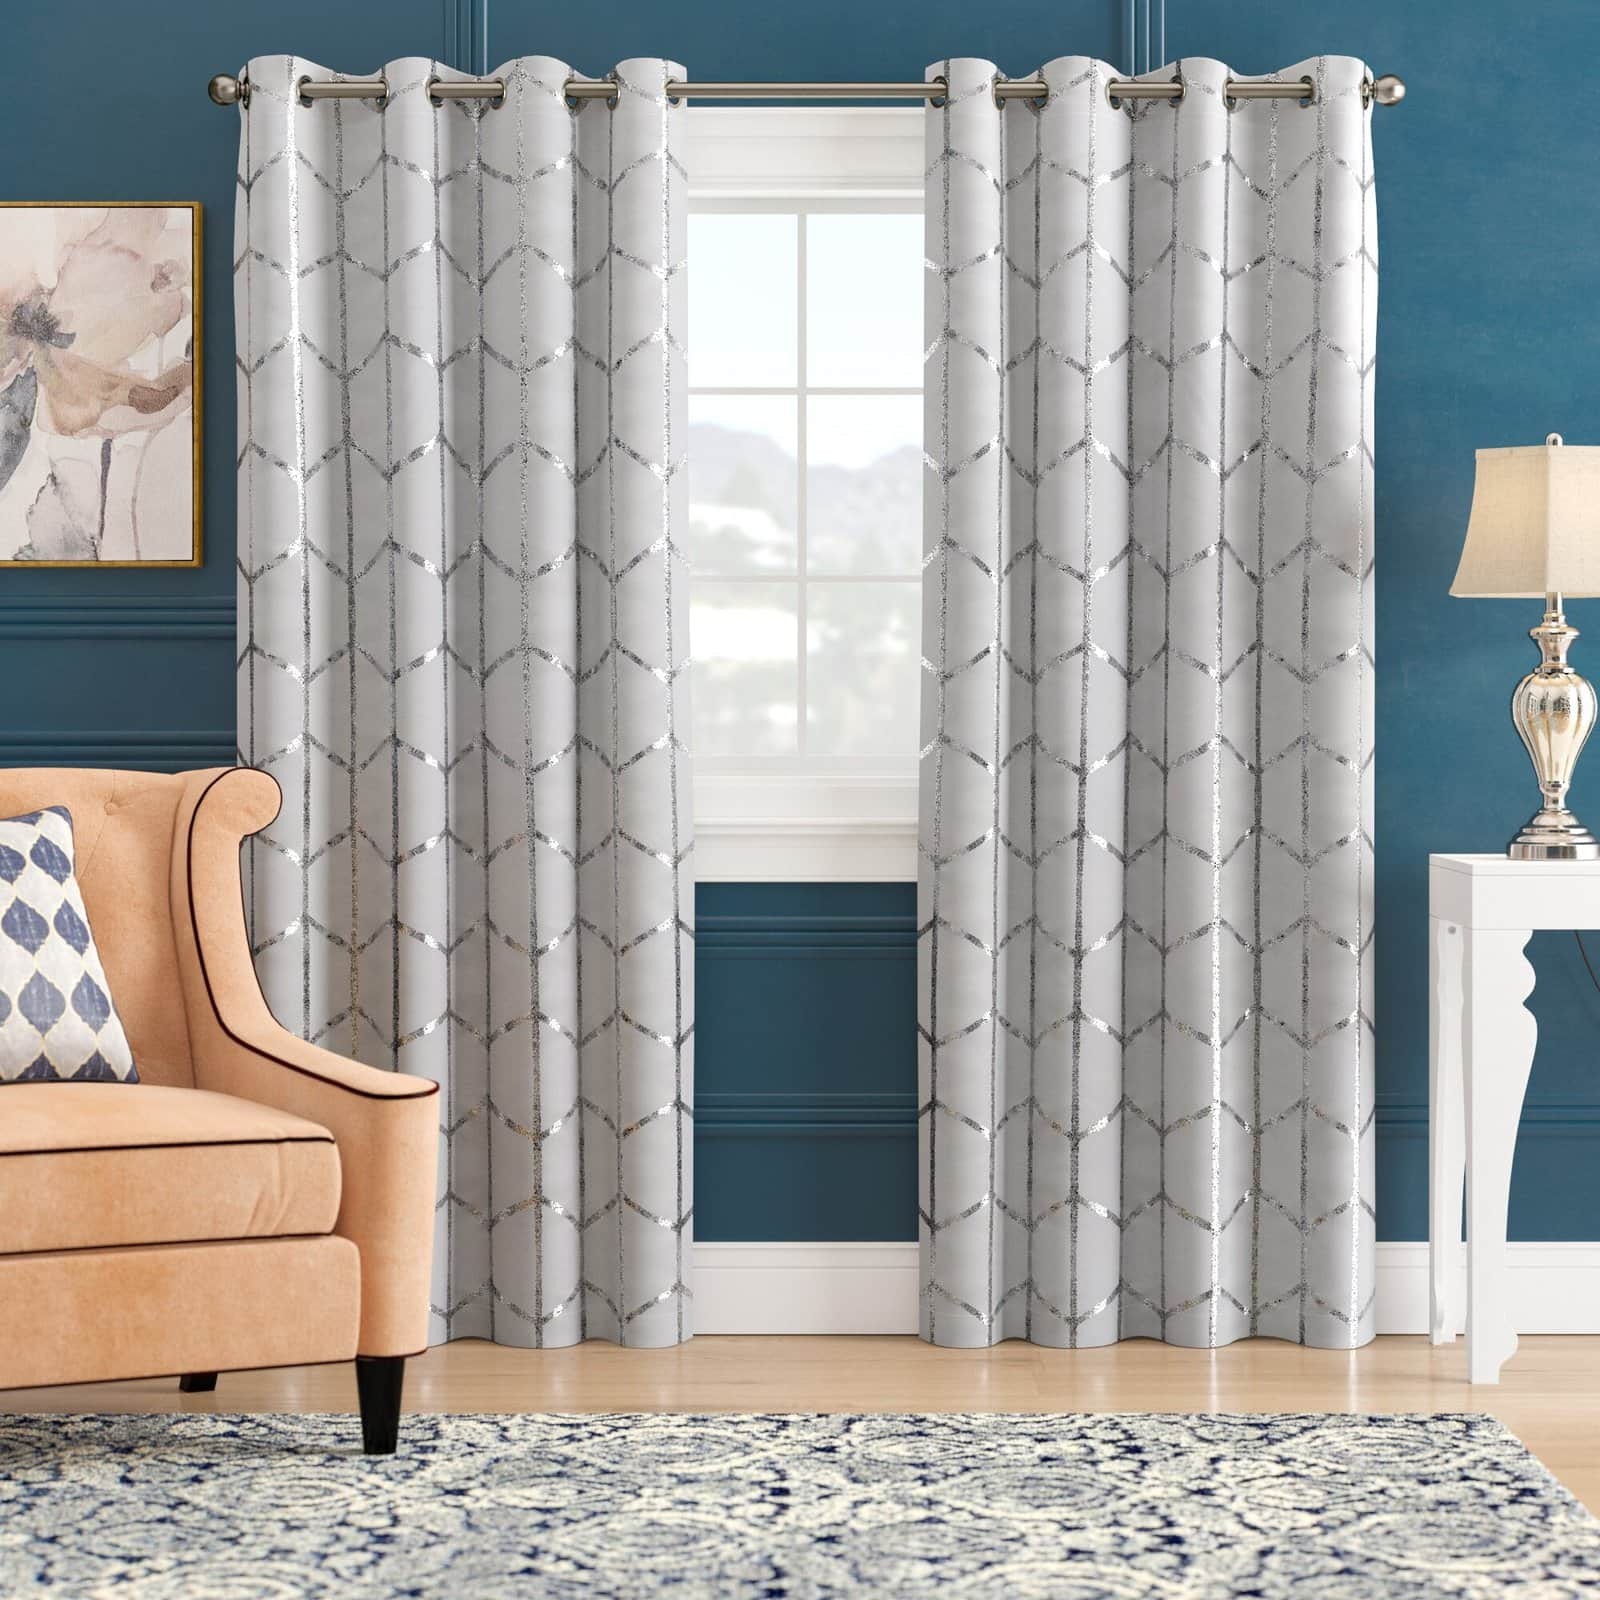 What Color Curtain Goes With Blue Walls 16 Ideas